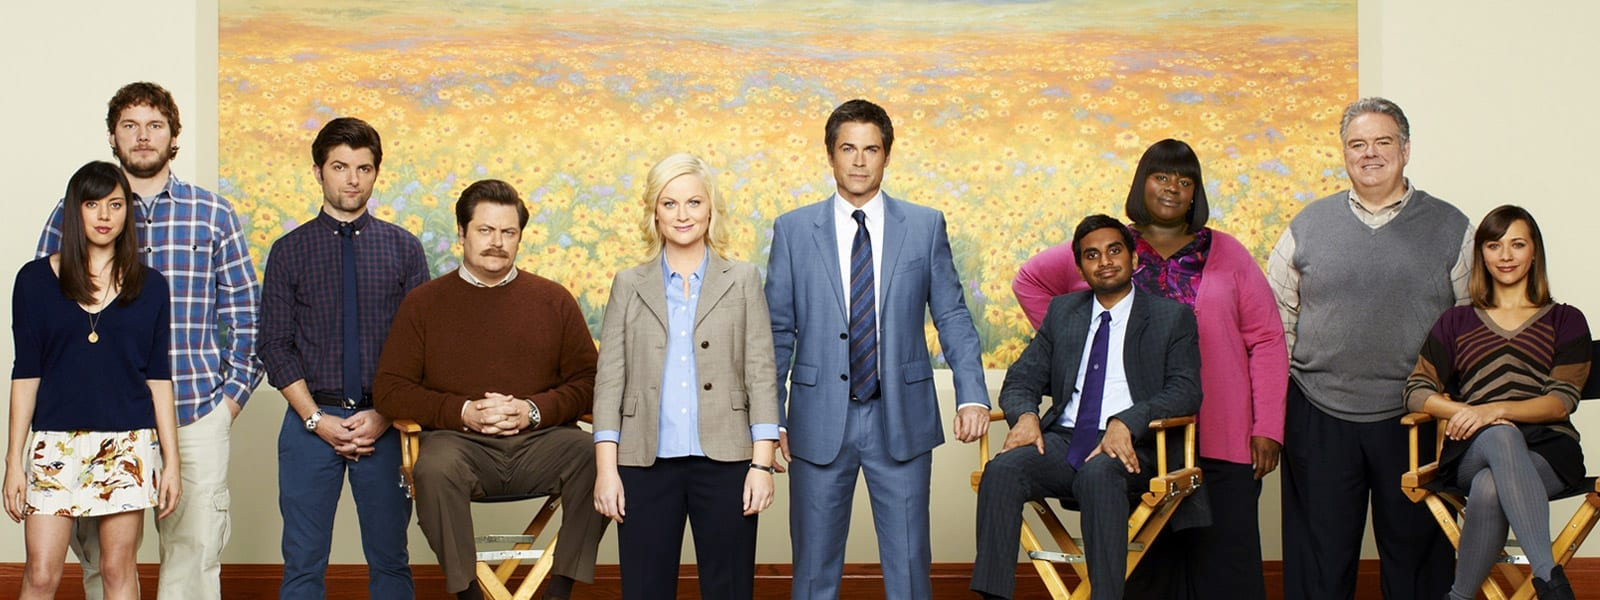 TV News: 'Parks and Recreation' Set to End in February